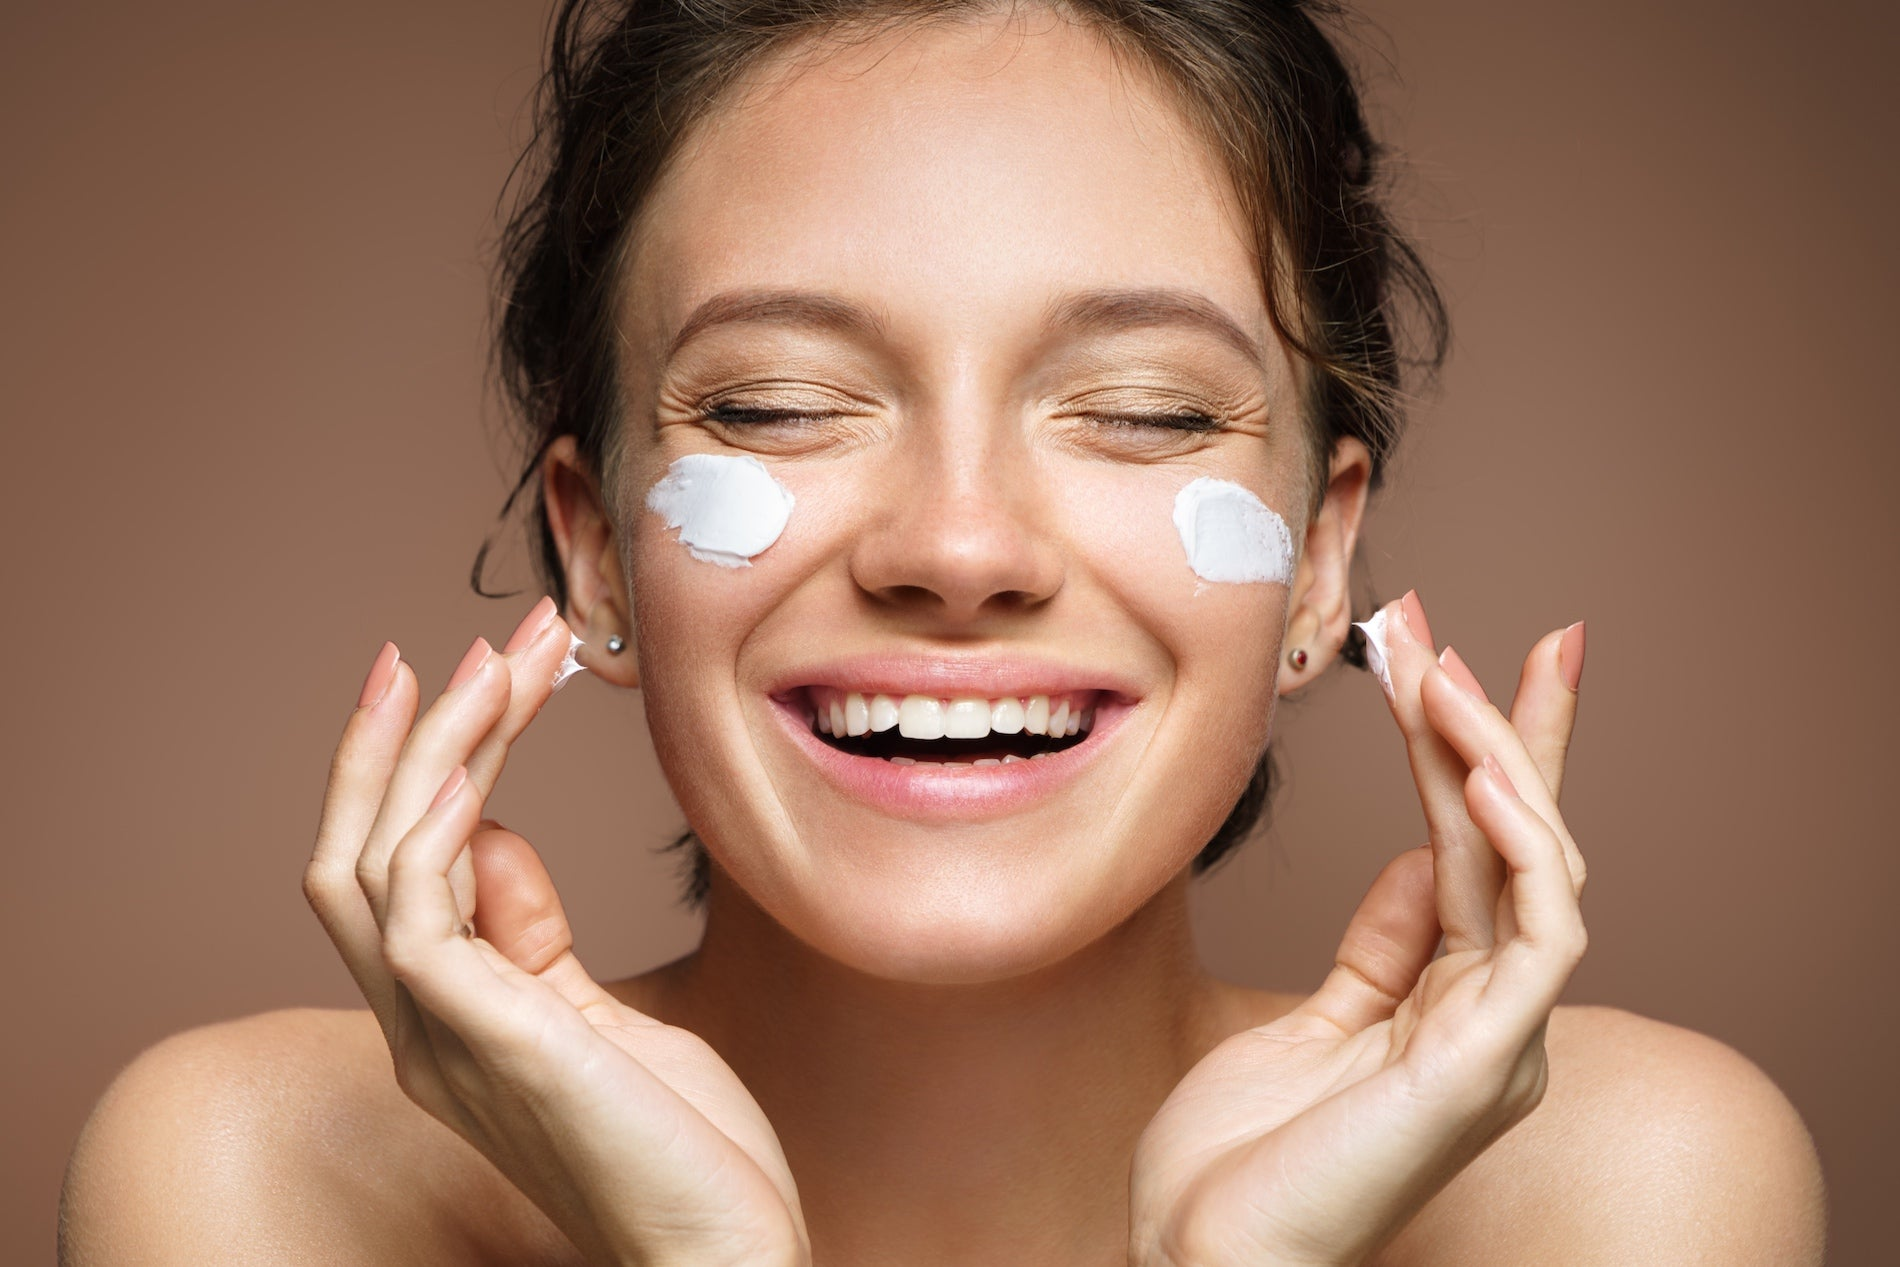 Woman smiling while applying face cream